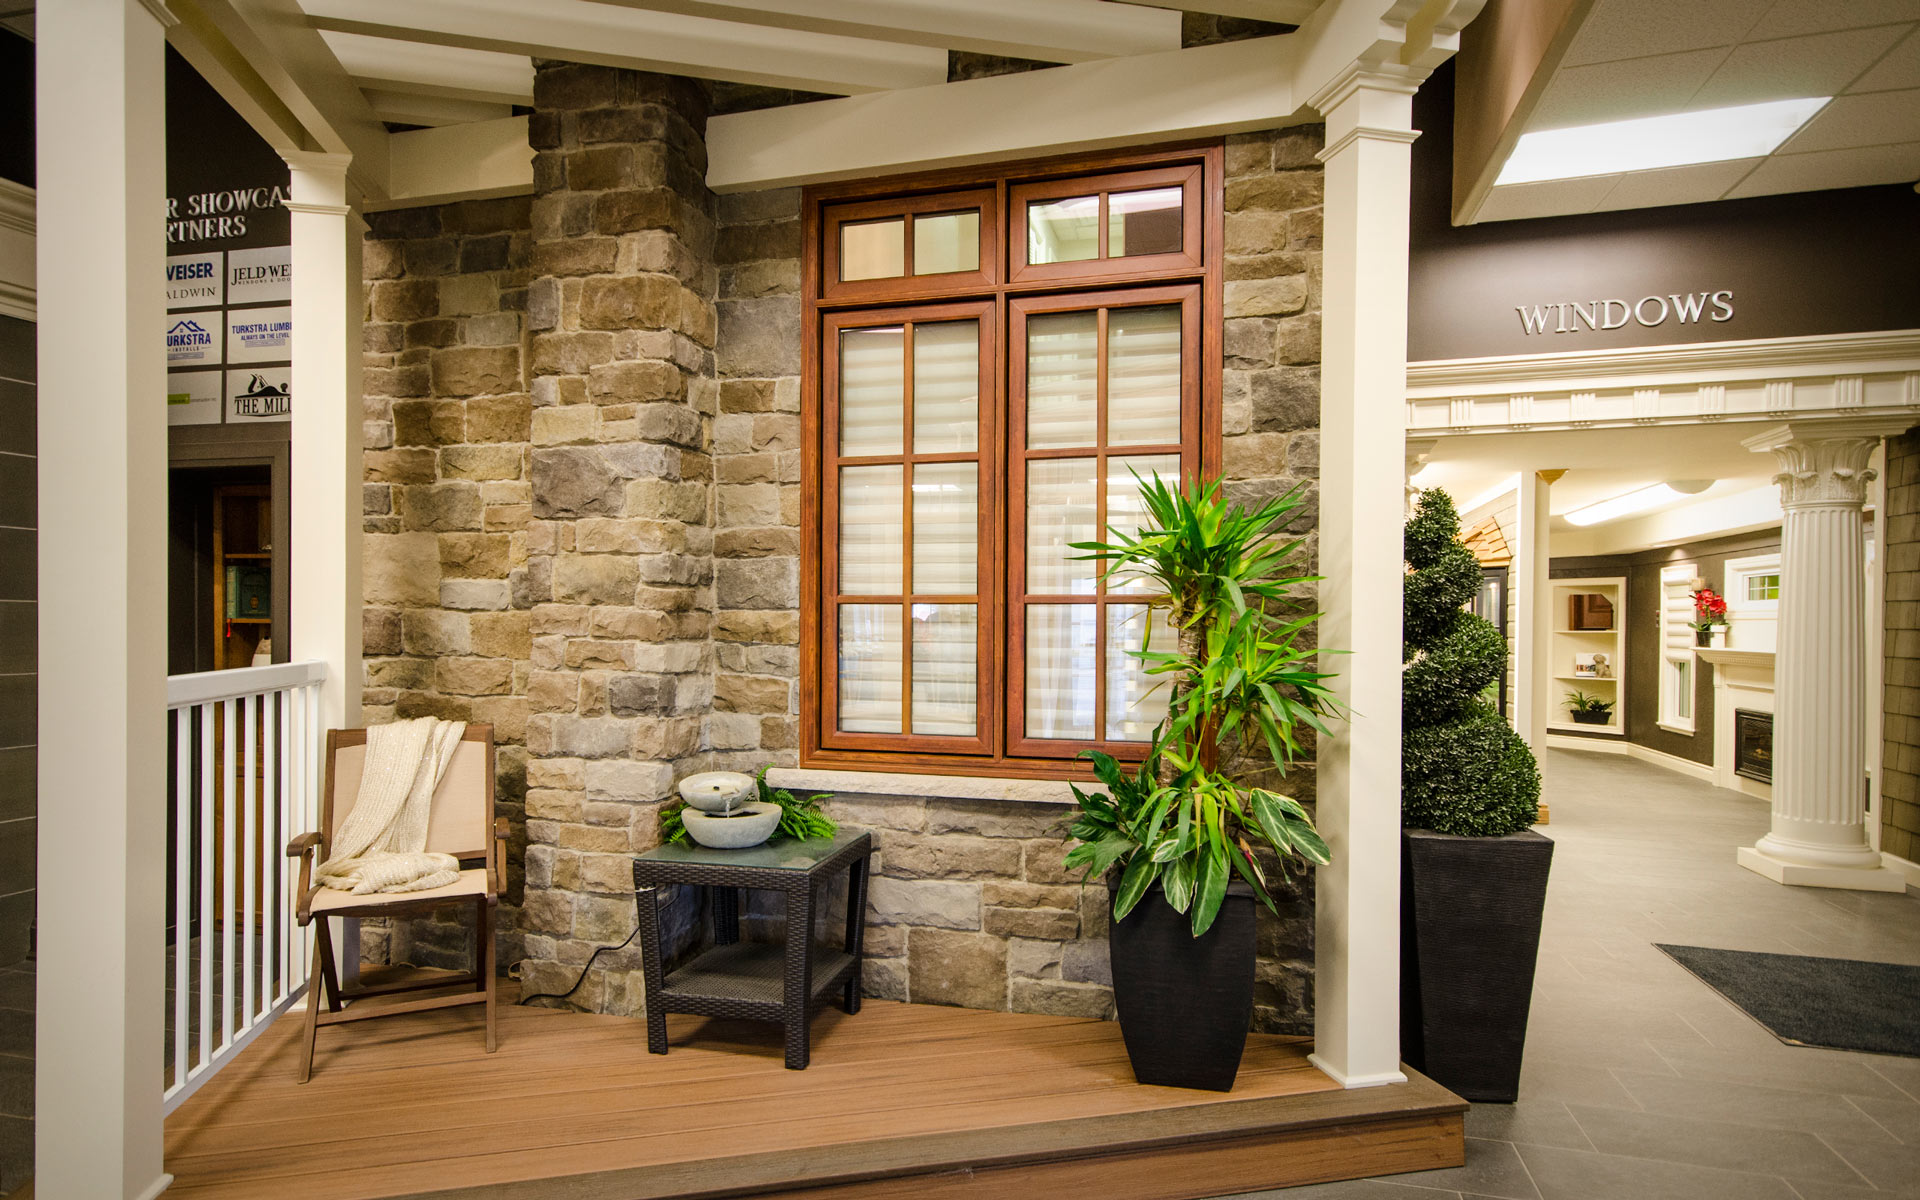 Designer Showcase - Visit our showroom to view trims, doors, windows, columns, decks or speak with a consultant by Turkstra Lumber.